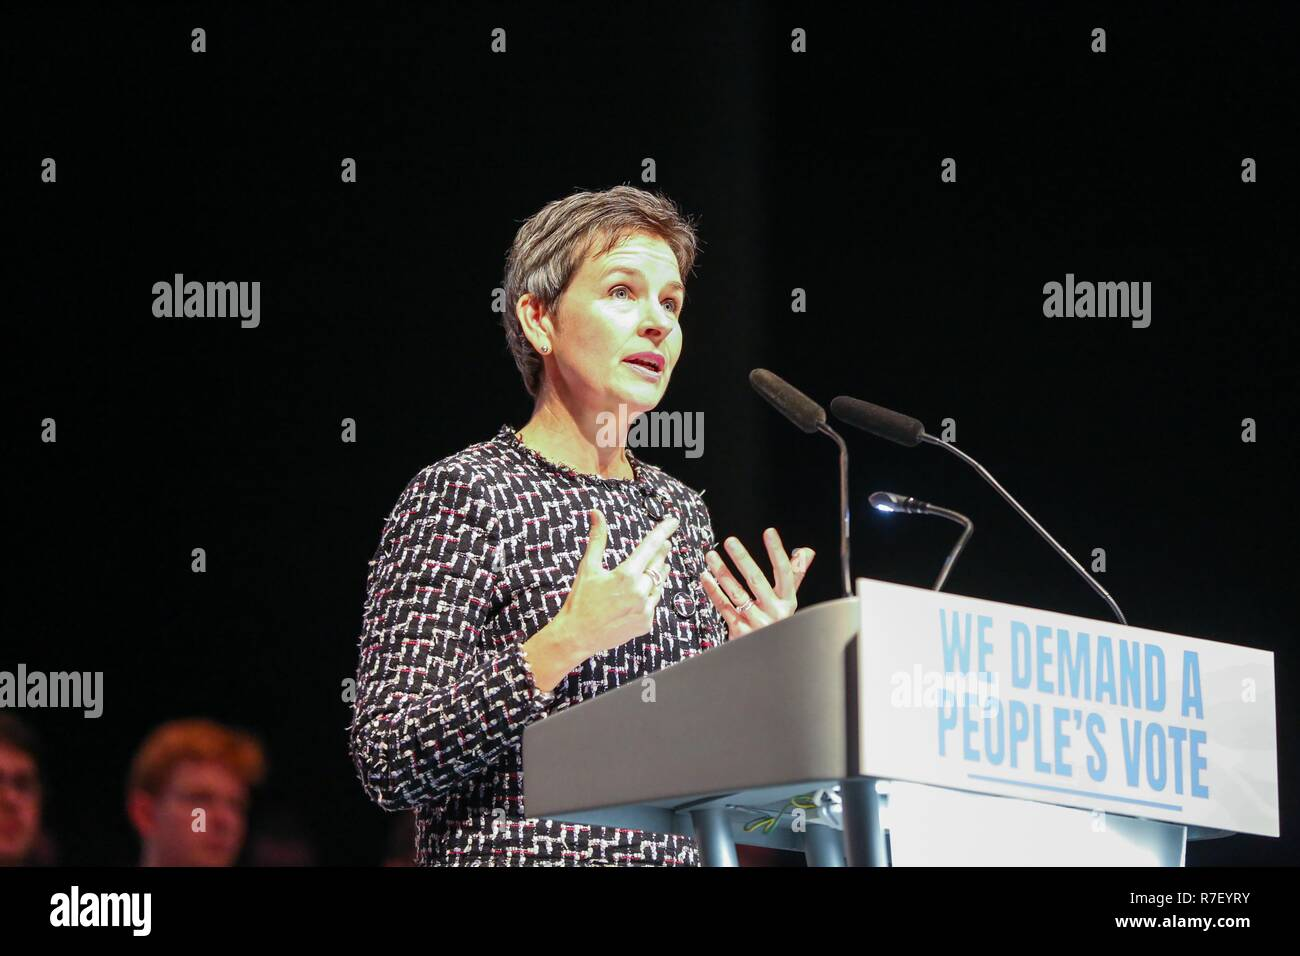 London, UK. 9th Dec, 2018. MP Mary Creagh is seen speaking during the rally.Hundreds of people attend the Best for Britain and the People's Vote campaign's rally at Excel Centre in East London on the eve of the week in which Parliament will vote on Prime Minister Theresa May's Brexit withdrawal deal. Credit: Dinendra Haria/SOPA Images/ZUMA Wire/Alamy Live News - Stock Image